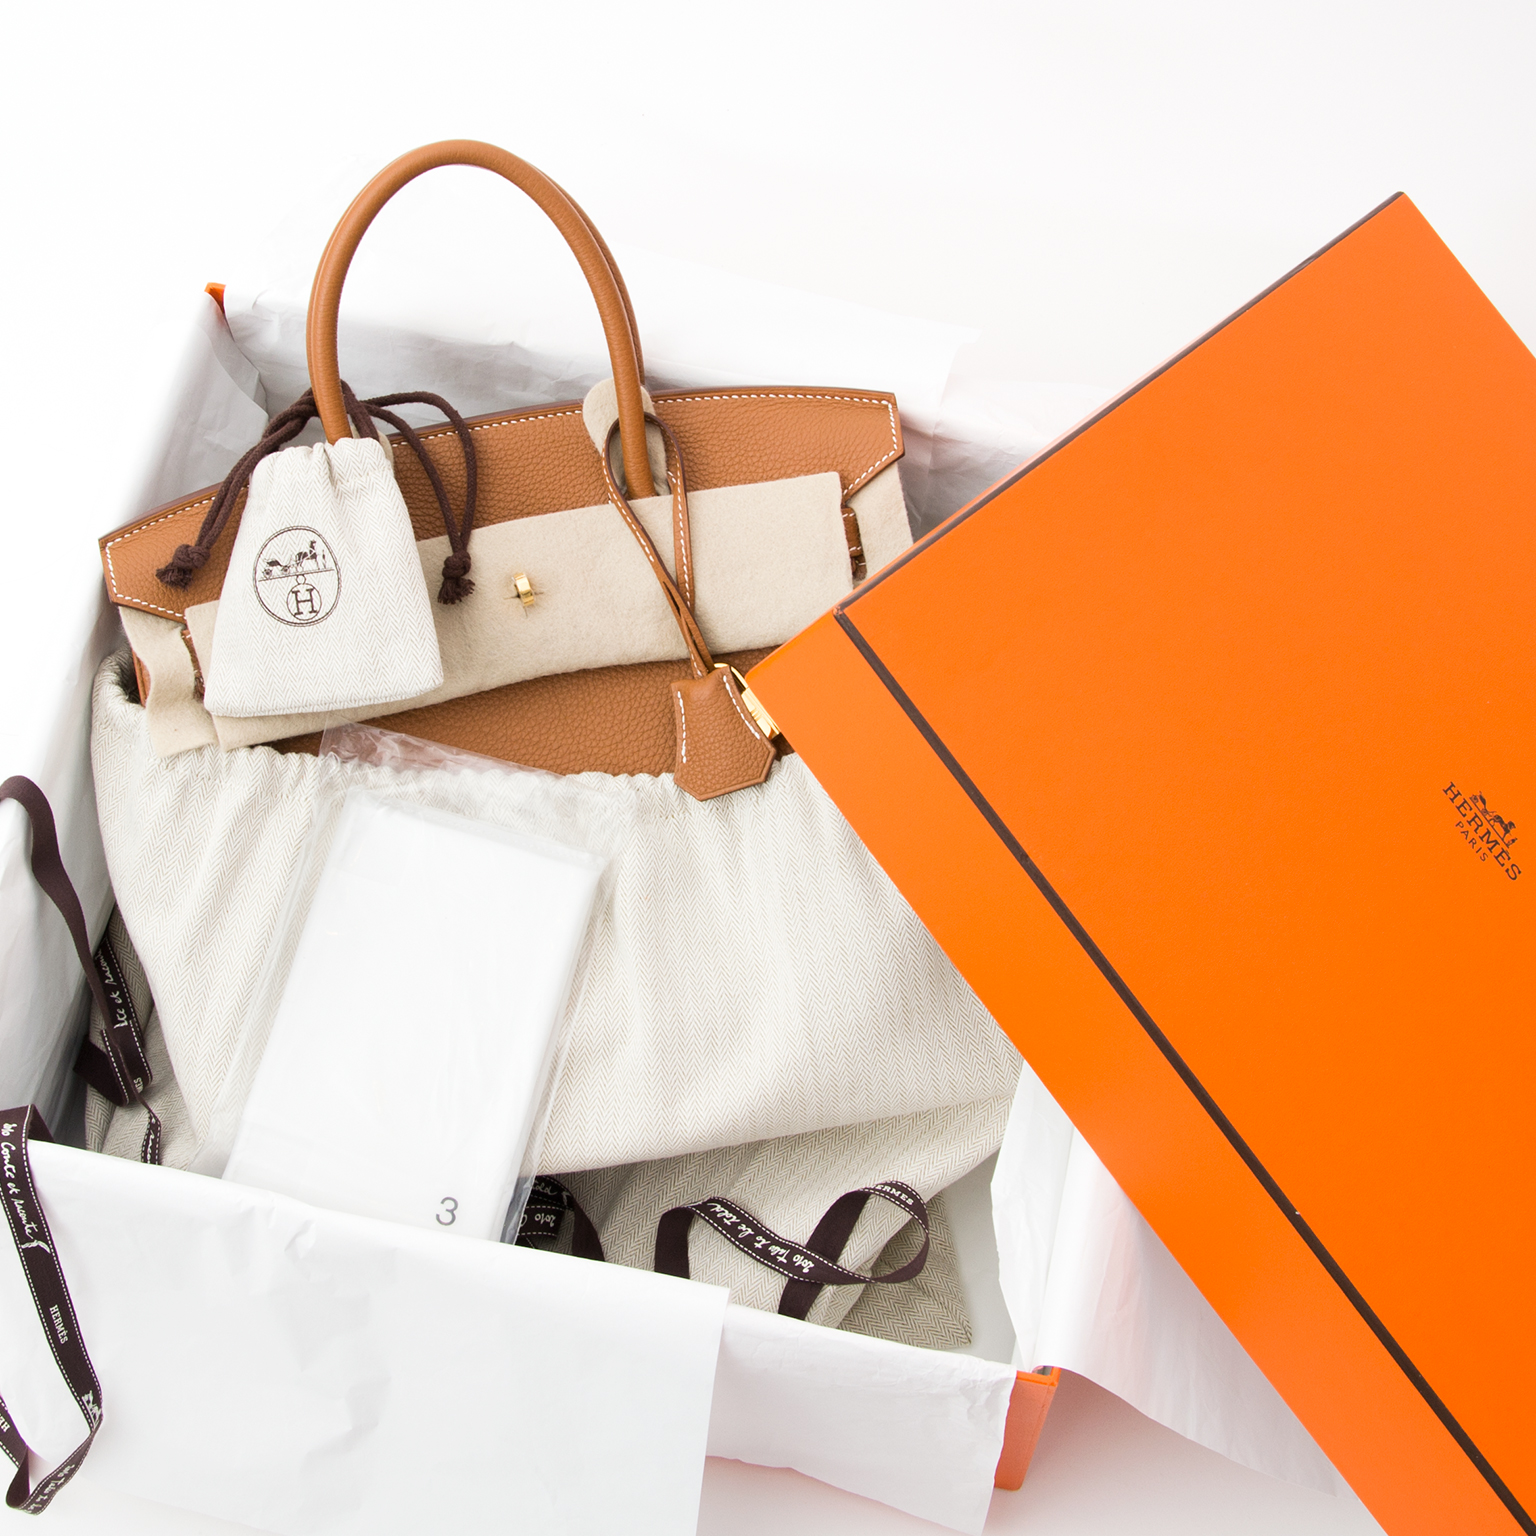 14fef70f1e93 Buy authentic secondhand Hermès bags at the right price Fresh from the  Hermès store